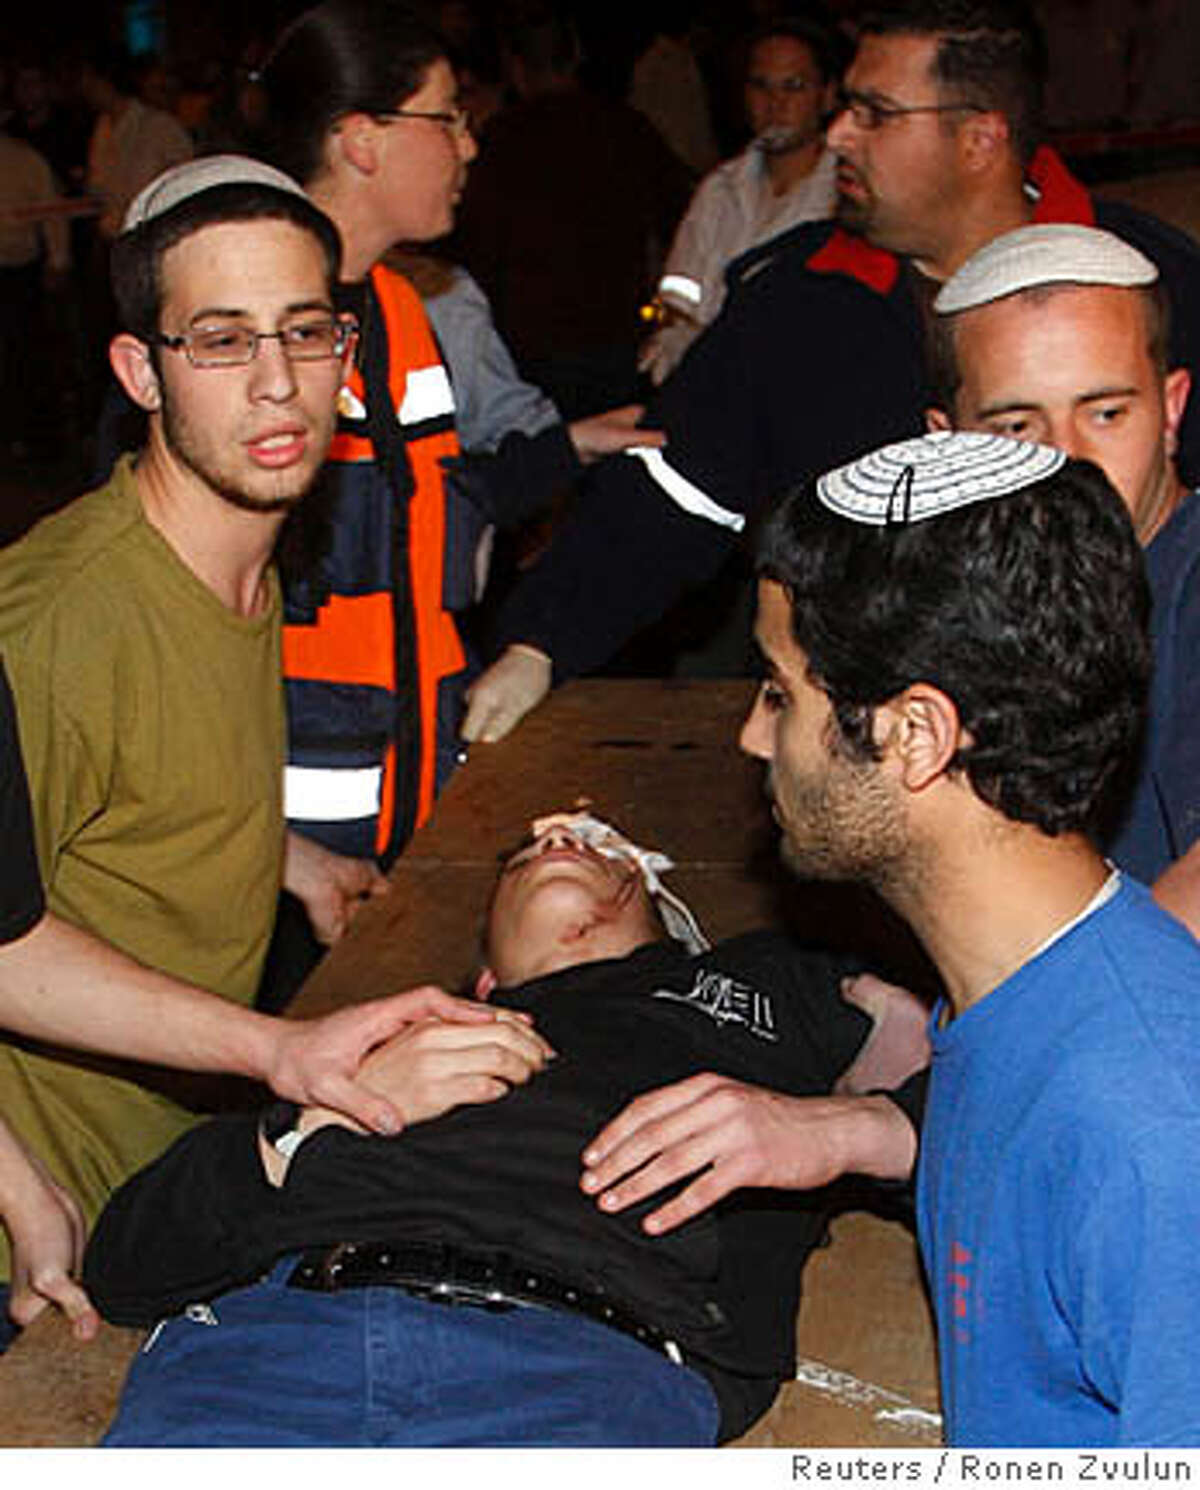 Jewish religious school students evacuate a fellow student after he was injured in a shooting attack in Jerusalem March 6, 2008. Two Palestinian gunmen opened fire in a Jewish religious school in Jerusalem on Thursday, killing at least six people, the Zaka emergency service said. The two gunmen were also killed in the assault at the Merkaz Harav seminary, Zaka said. But Israel Radio said one of the attackers may have escaped. REUTERS/Ronen Zvulun (JERUSALEM)